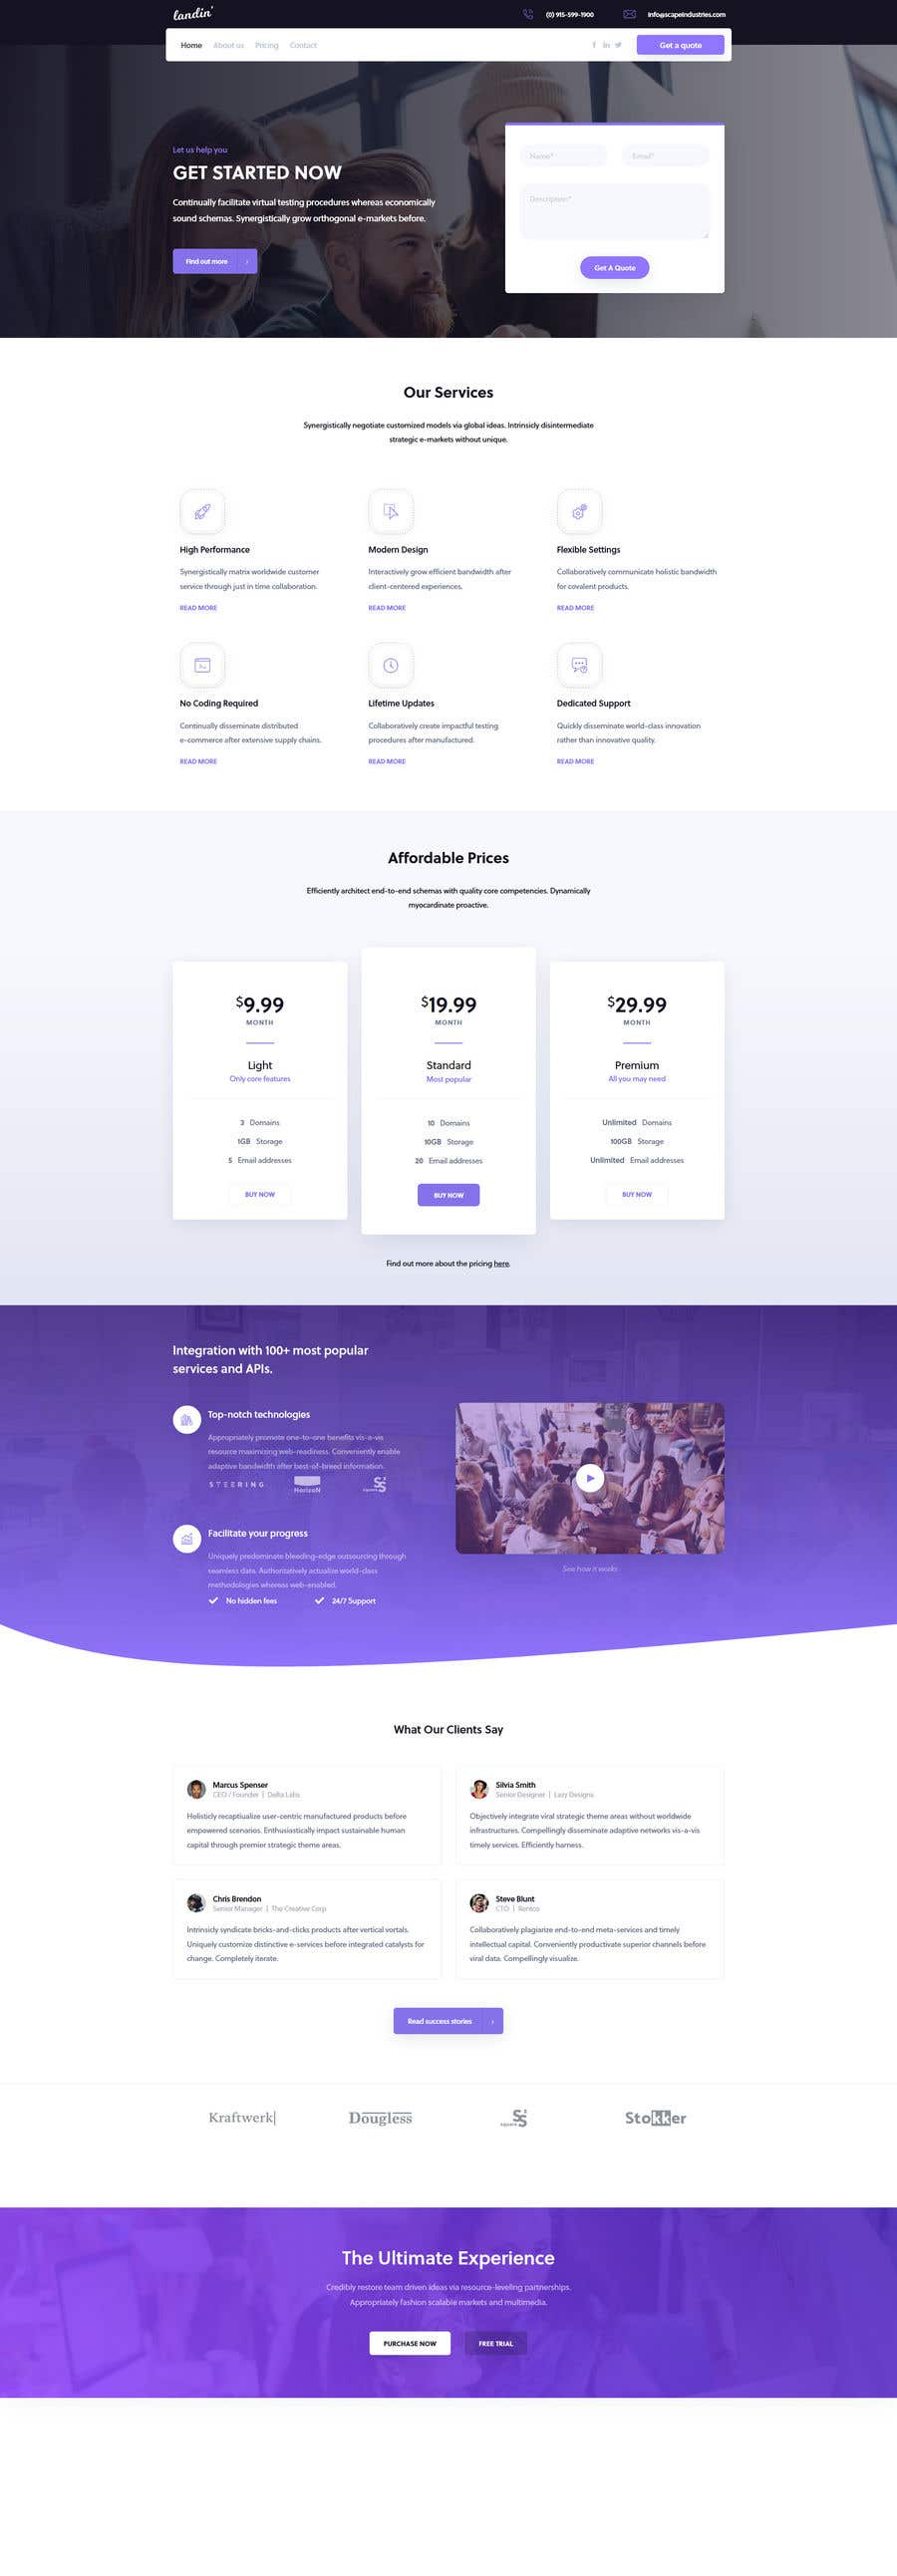 Bài tham dự cuộc thi #                                        43                                      cho                                         I need a Landing Page Website for Small Business Stores